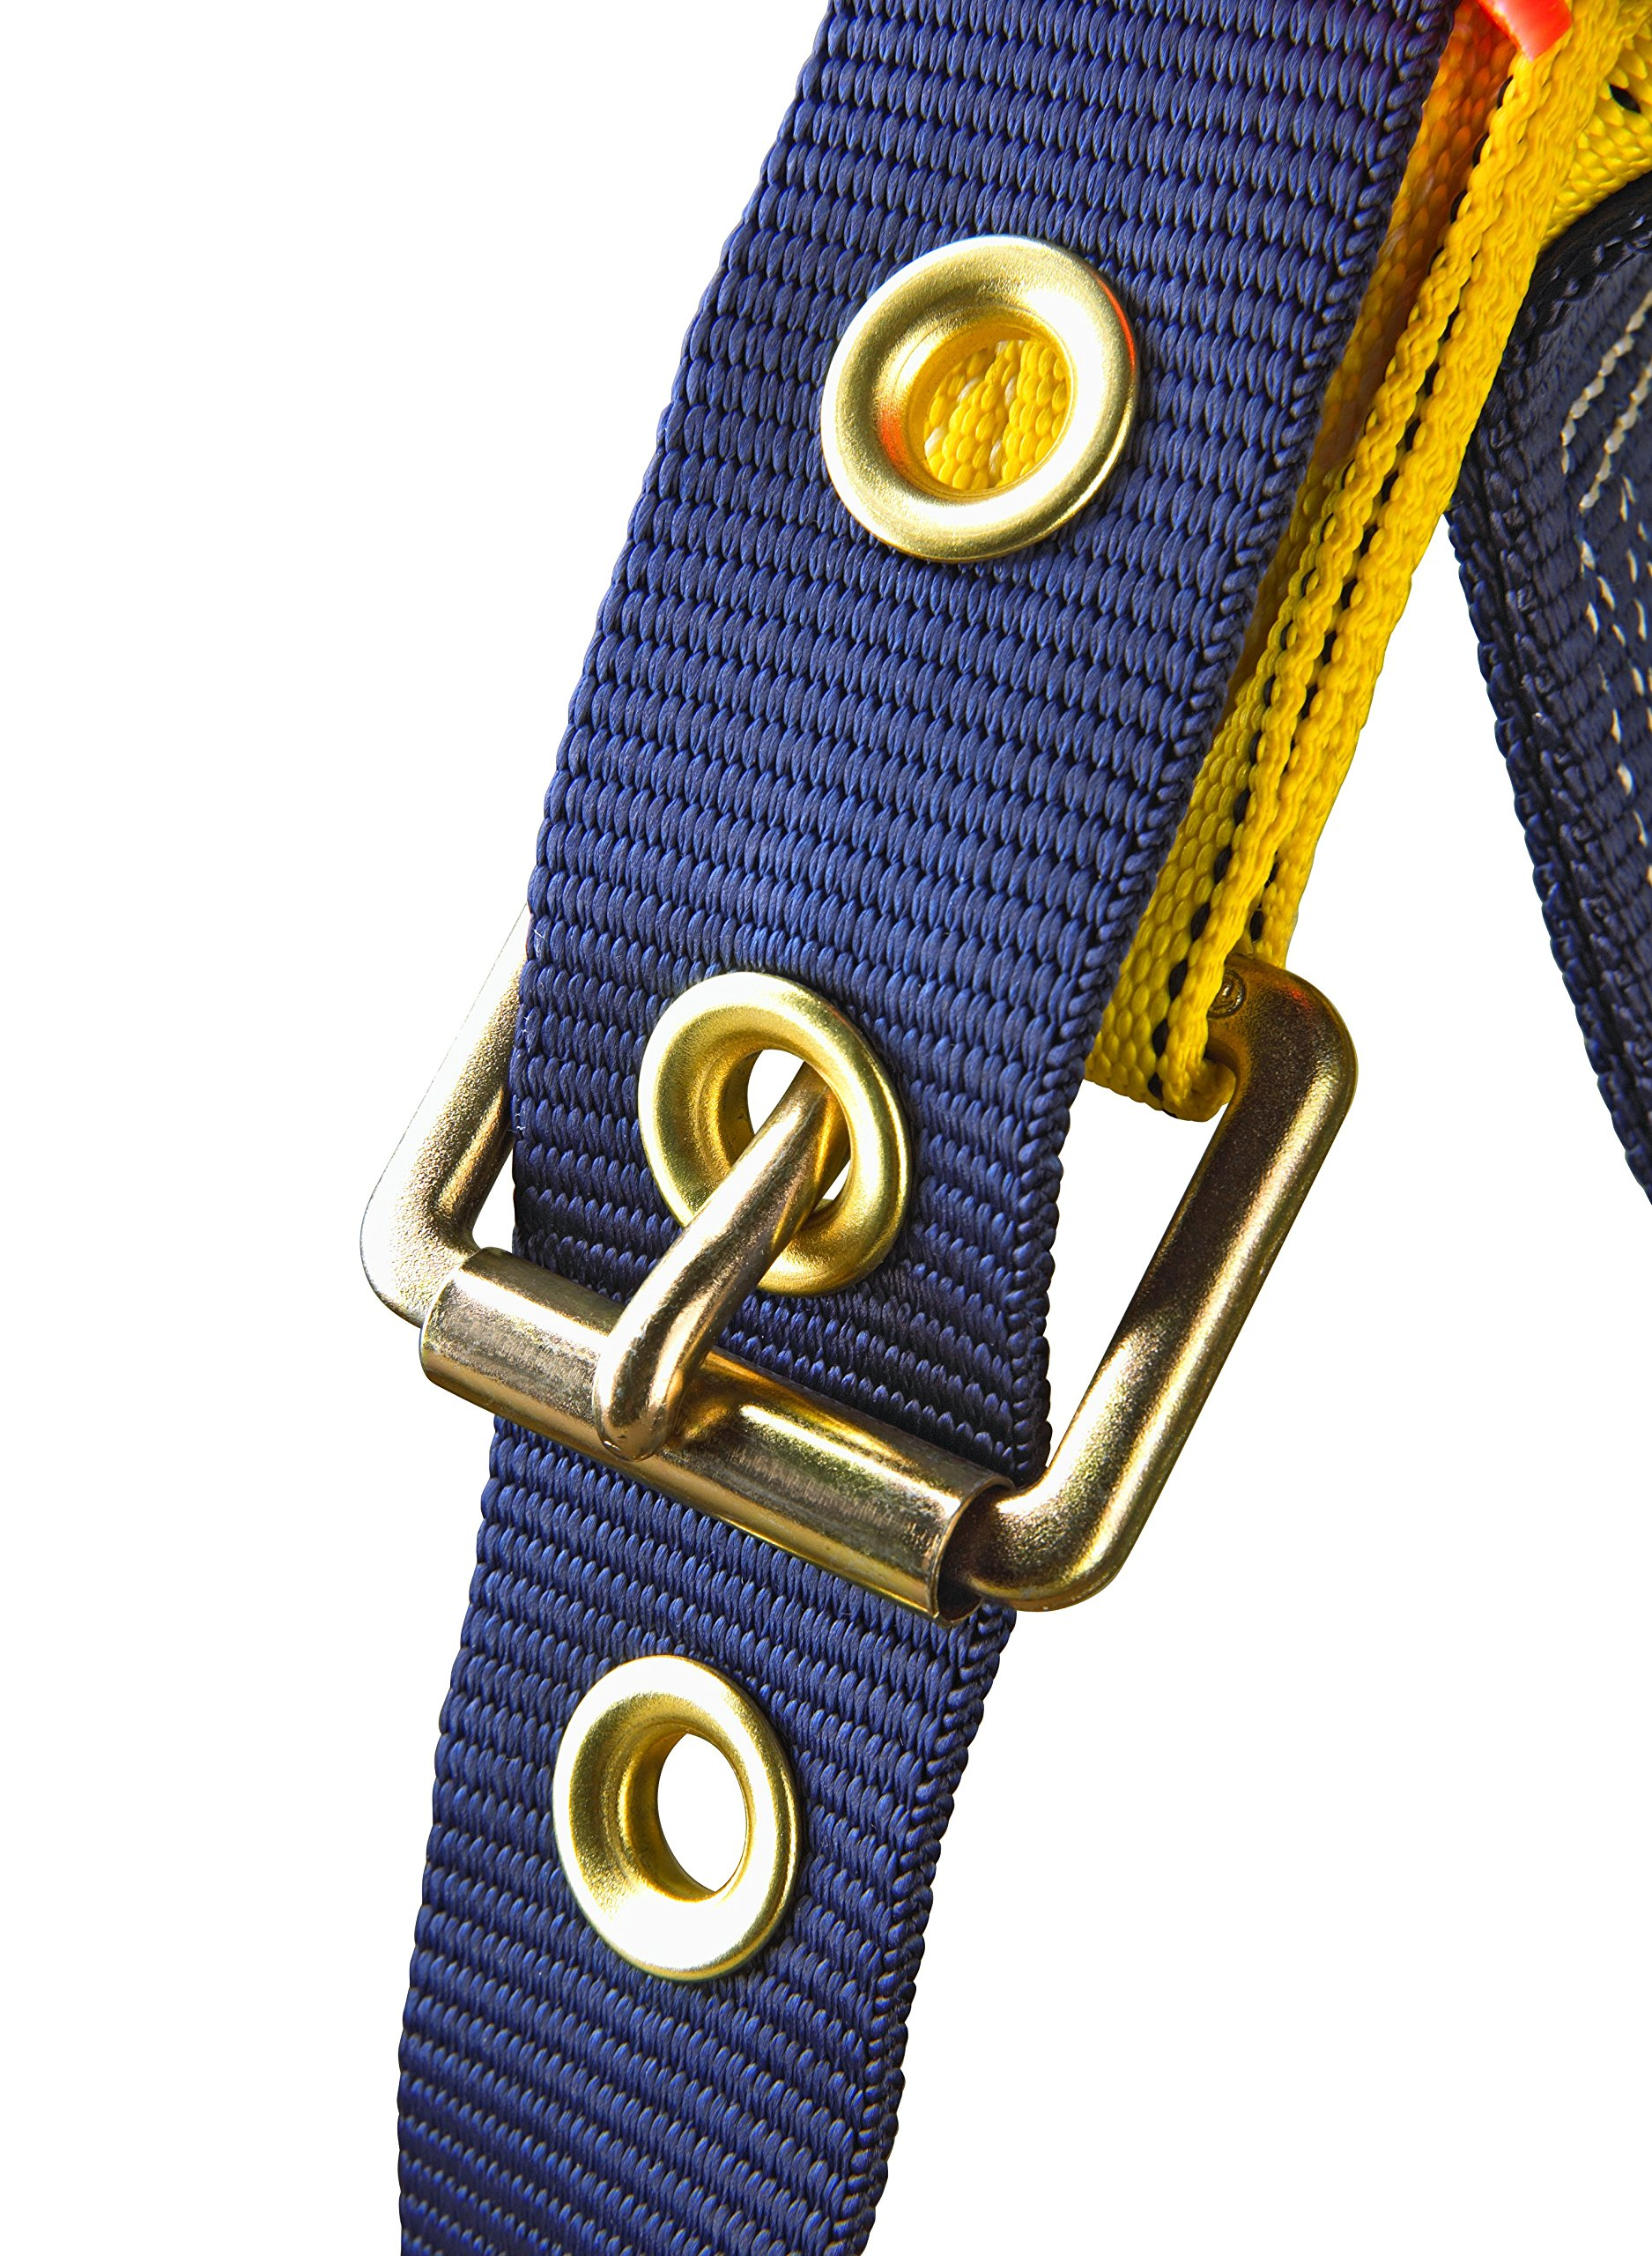 3M DBI-SALA Delta 1101654 Construction Harness, Back/Side D-Rings, Belt w/Sewn-In Back & Shoulder Pads, Tongue Buckle Leg Straps, Medium, Navy/Yellow by 3M Fall Protection Business (Image #4)